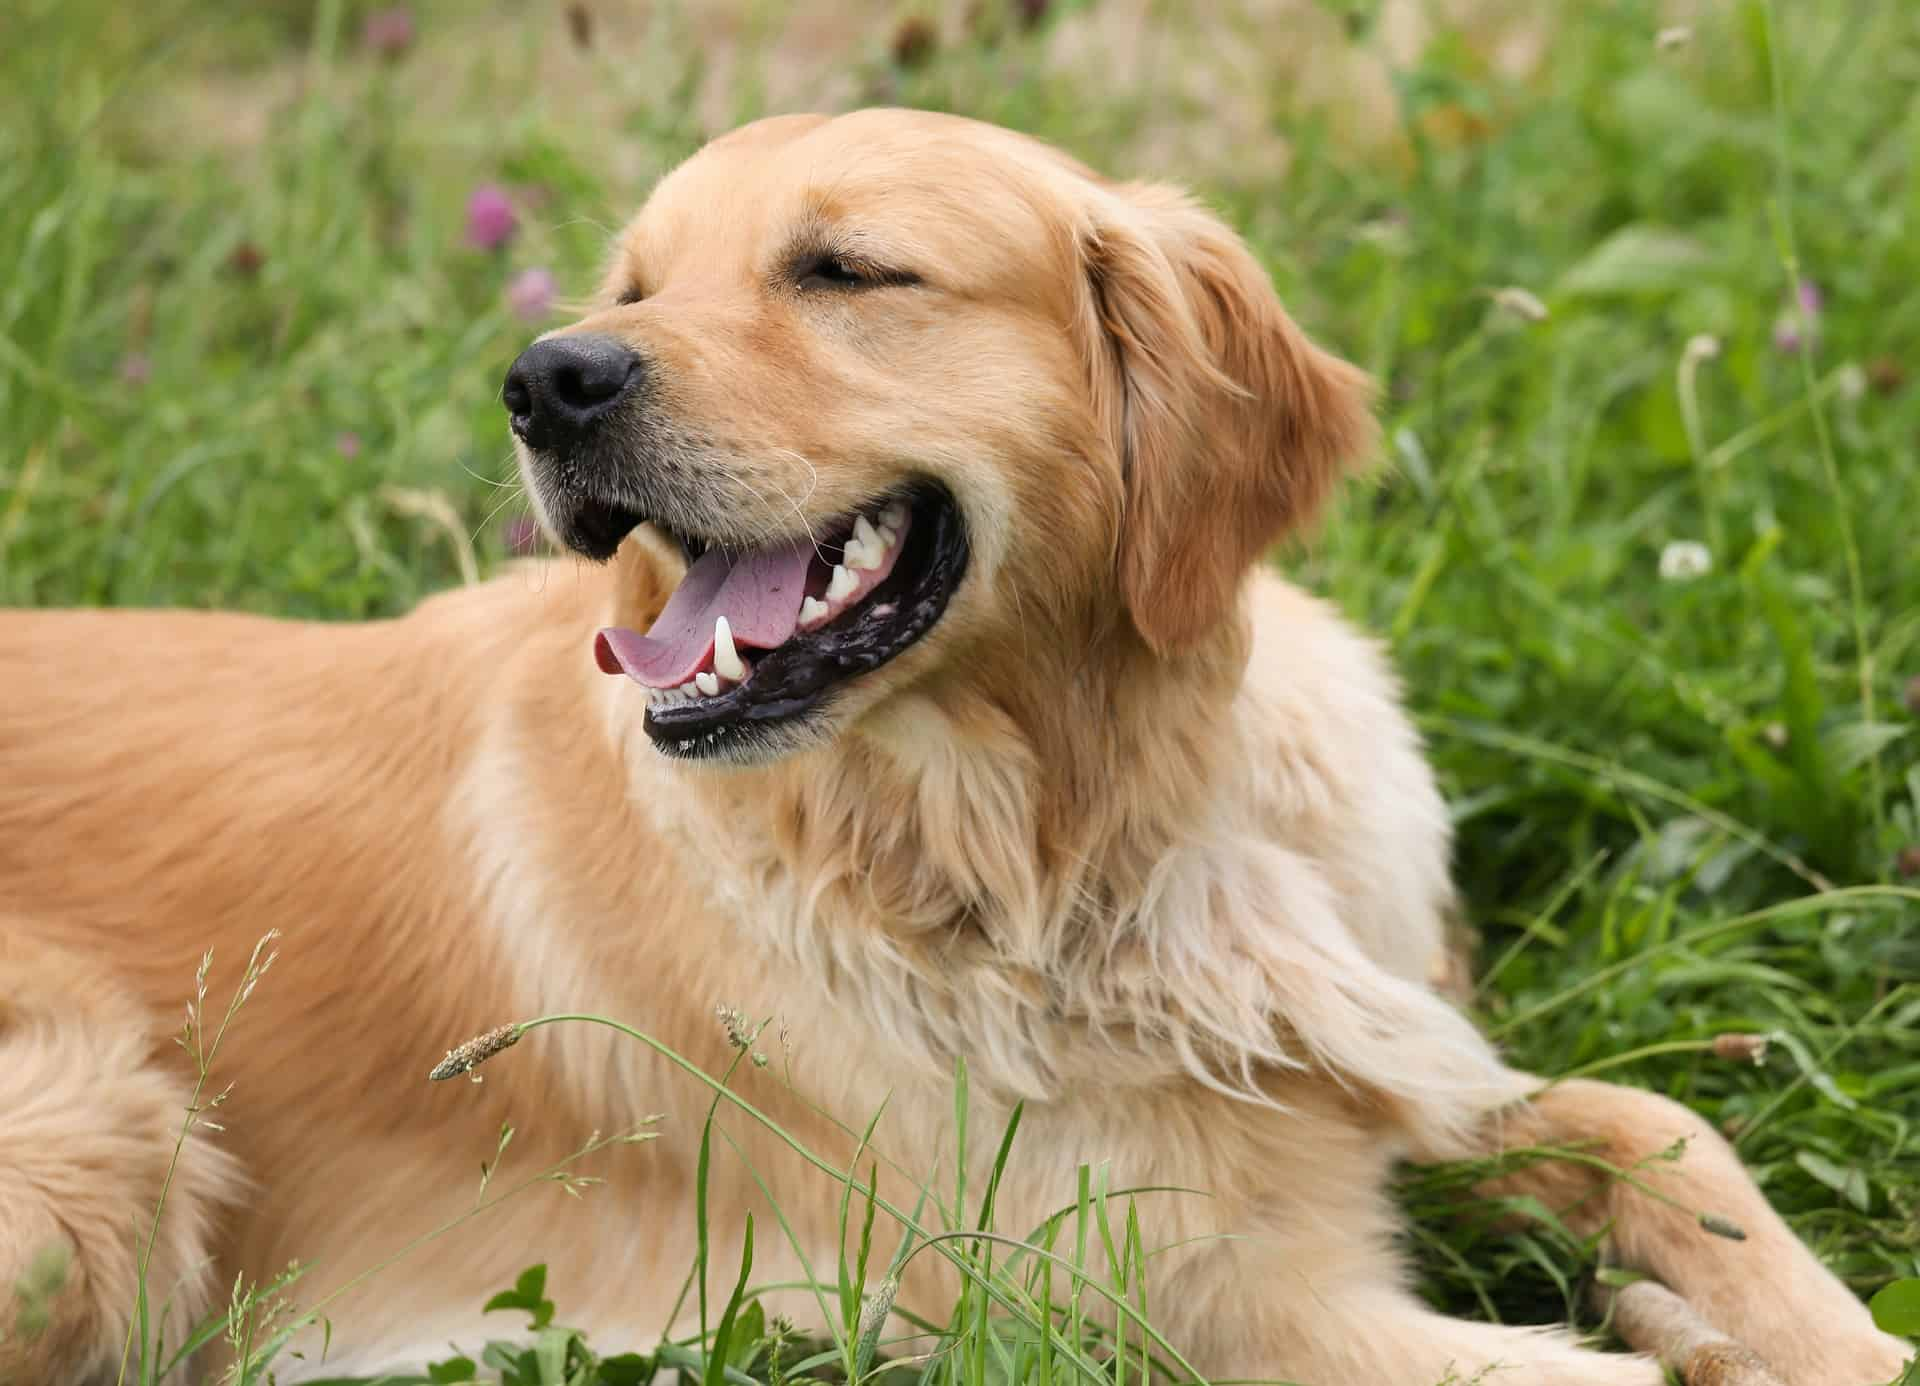 Clean Your Retriever's Ears